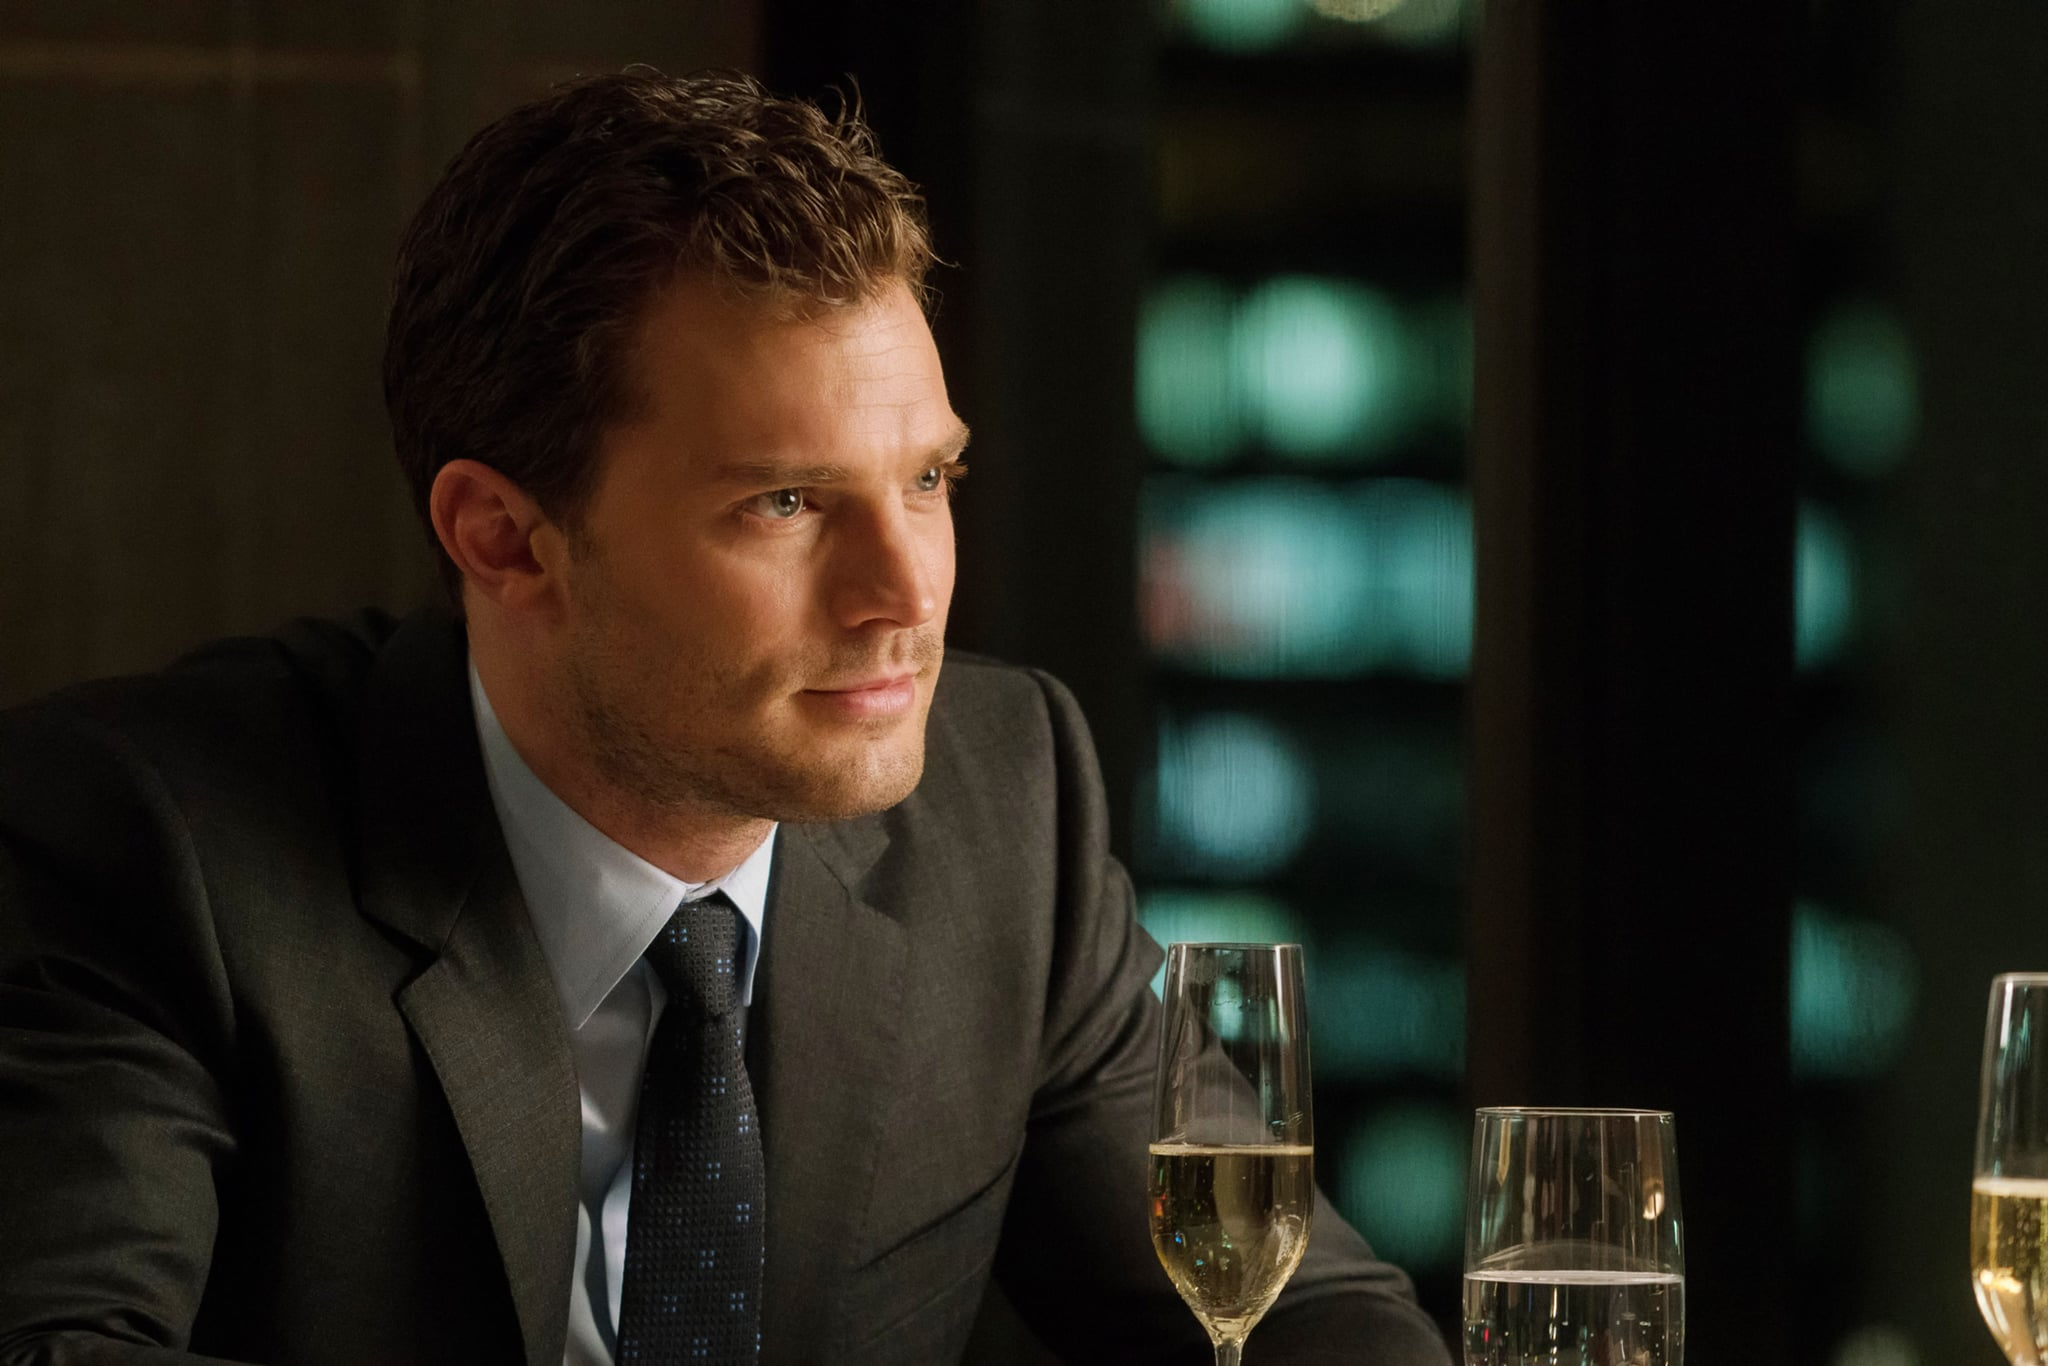 christian grey s background in fifty shades of grey popsugar share this link copy the titular character of the fifty shades of grey